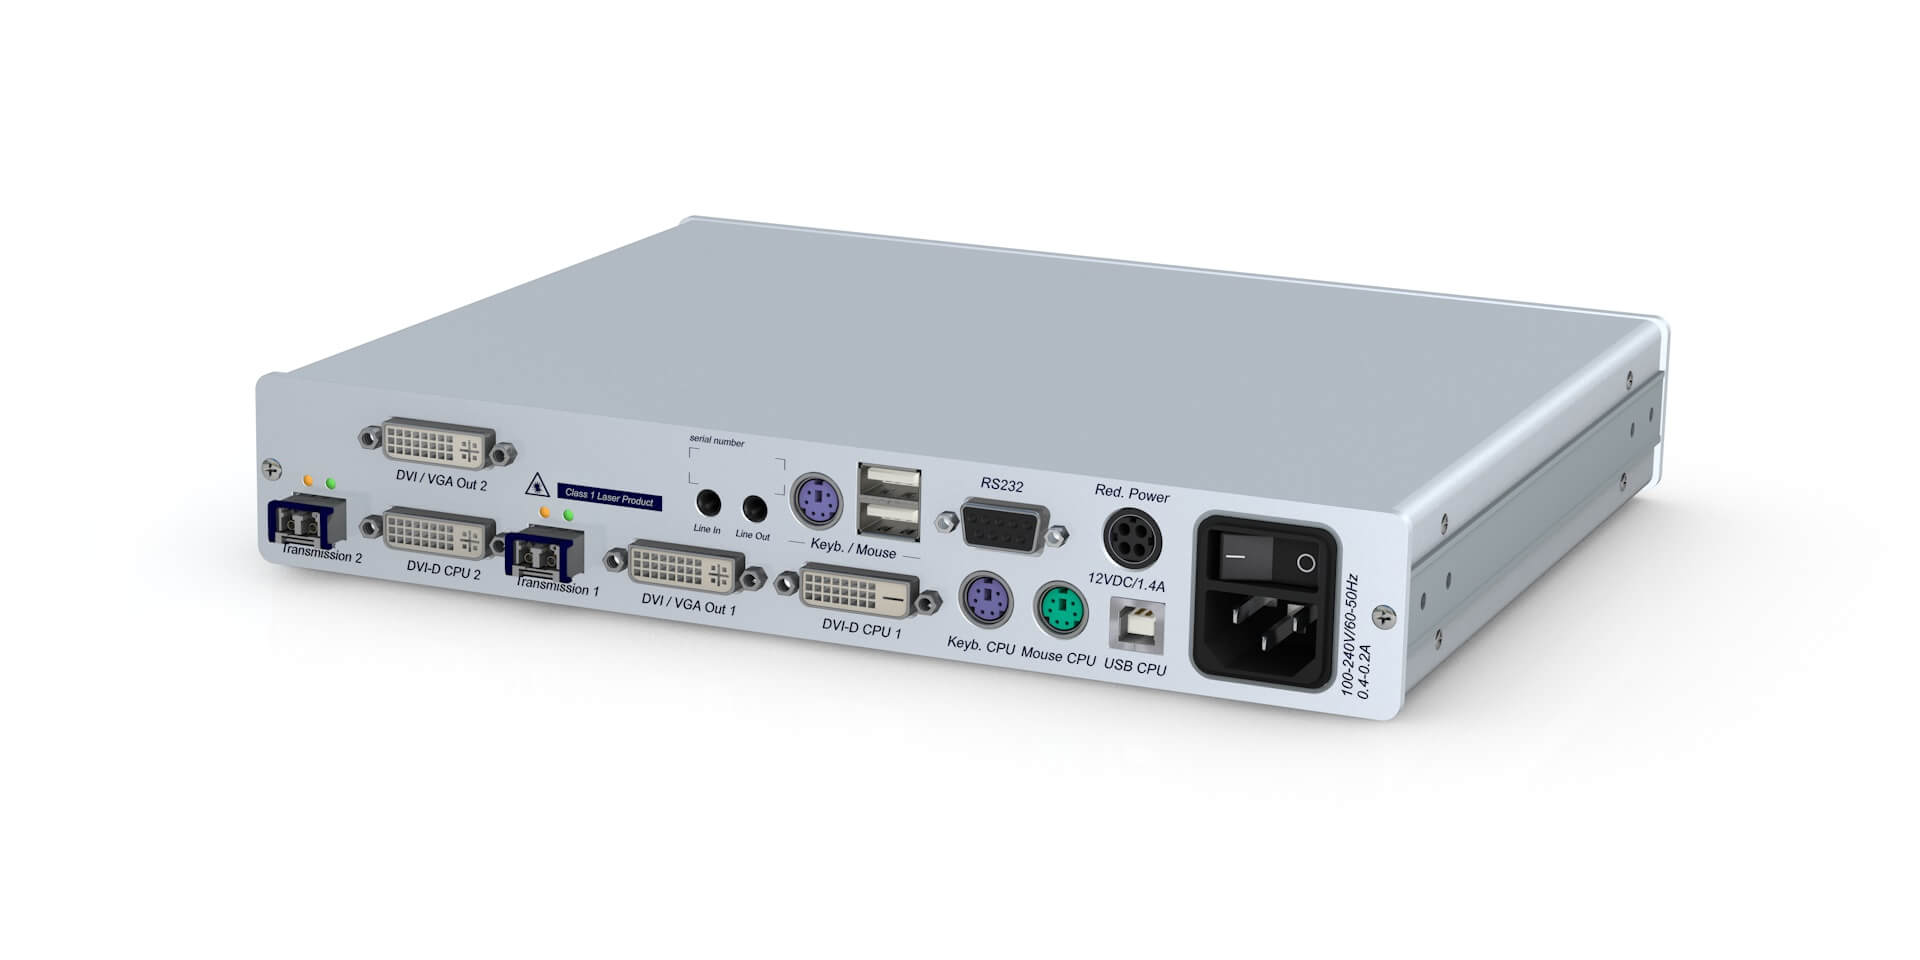 GDSys DVI-Vision Fiber MM MC2-ARU Extender - Transmitter Module - Single Tx 2xDVI-SL PS/2-USB Audio RS232 USB 2.0 Full Speed Desktop